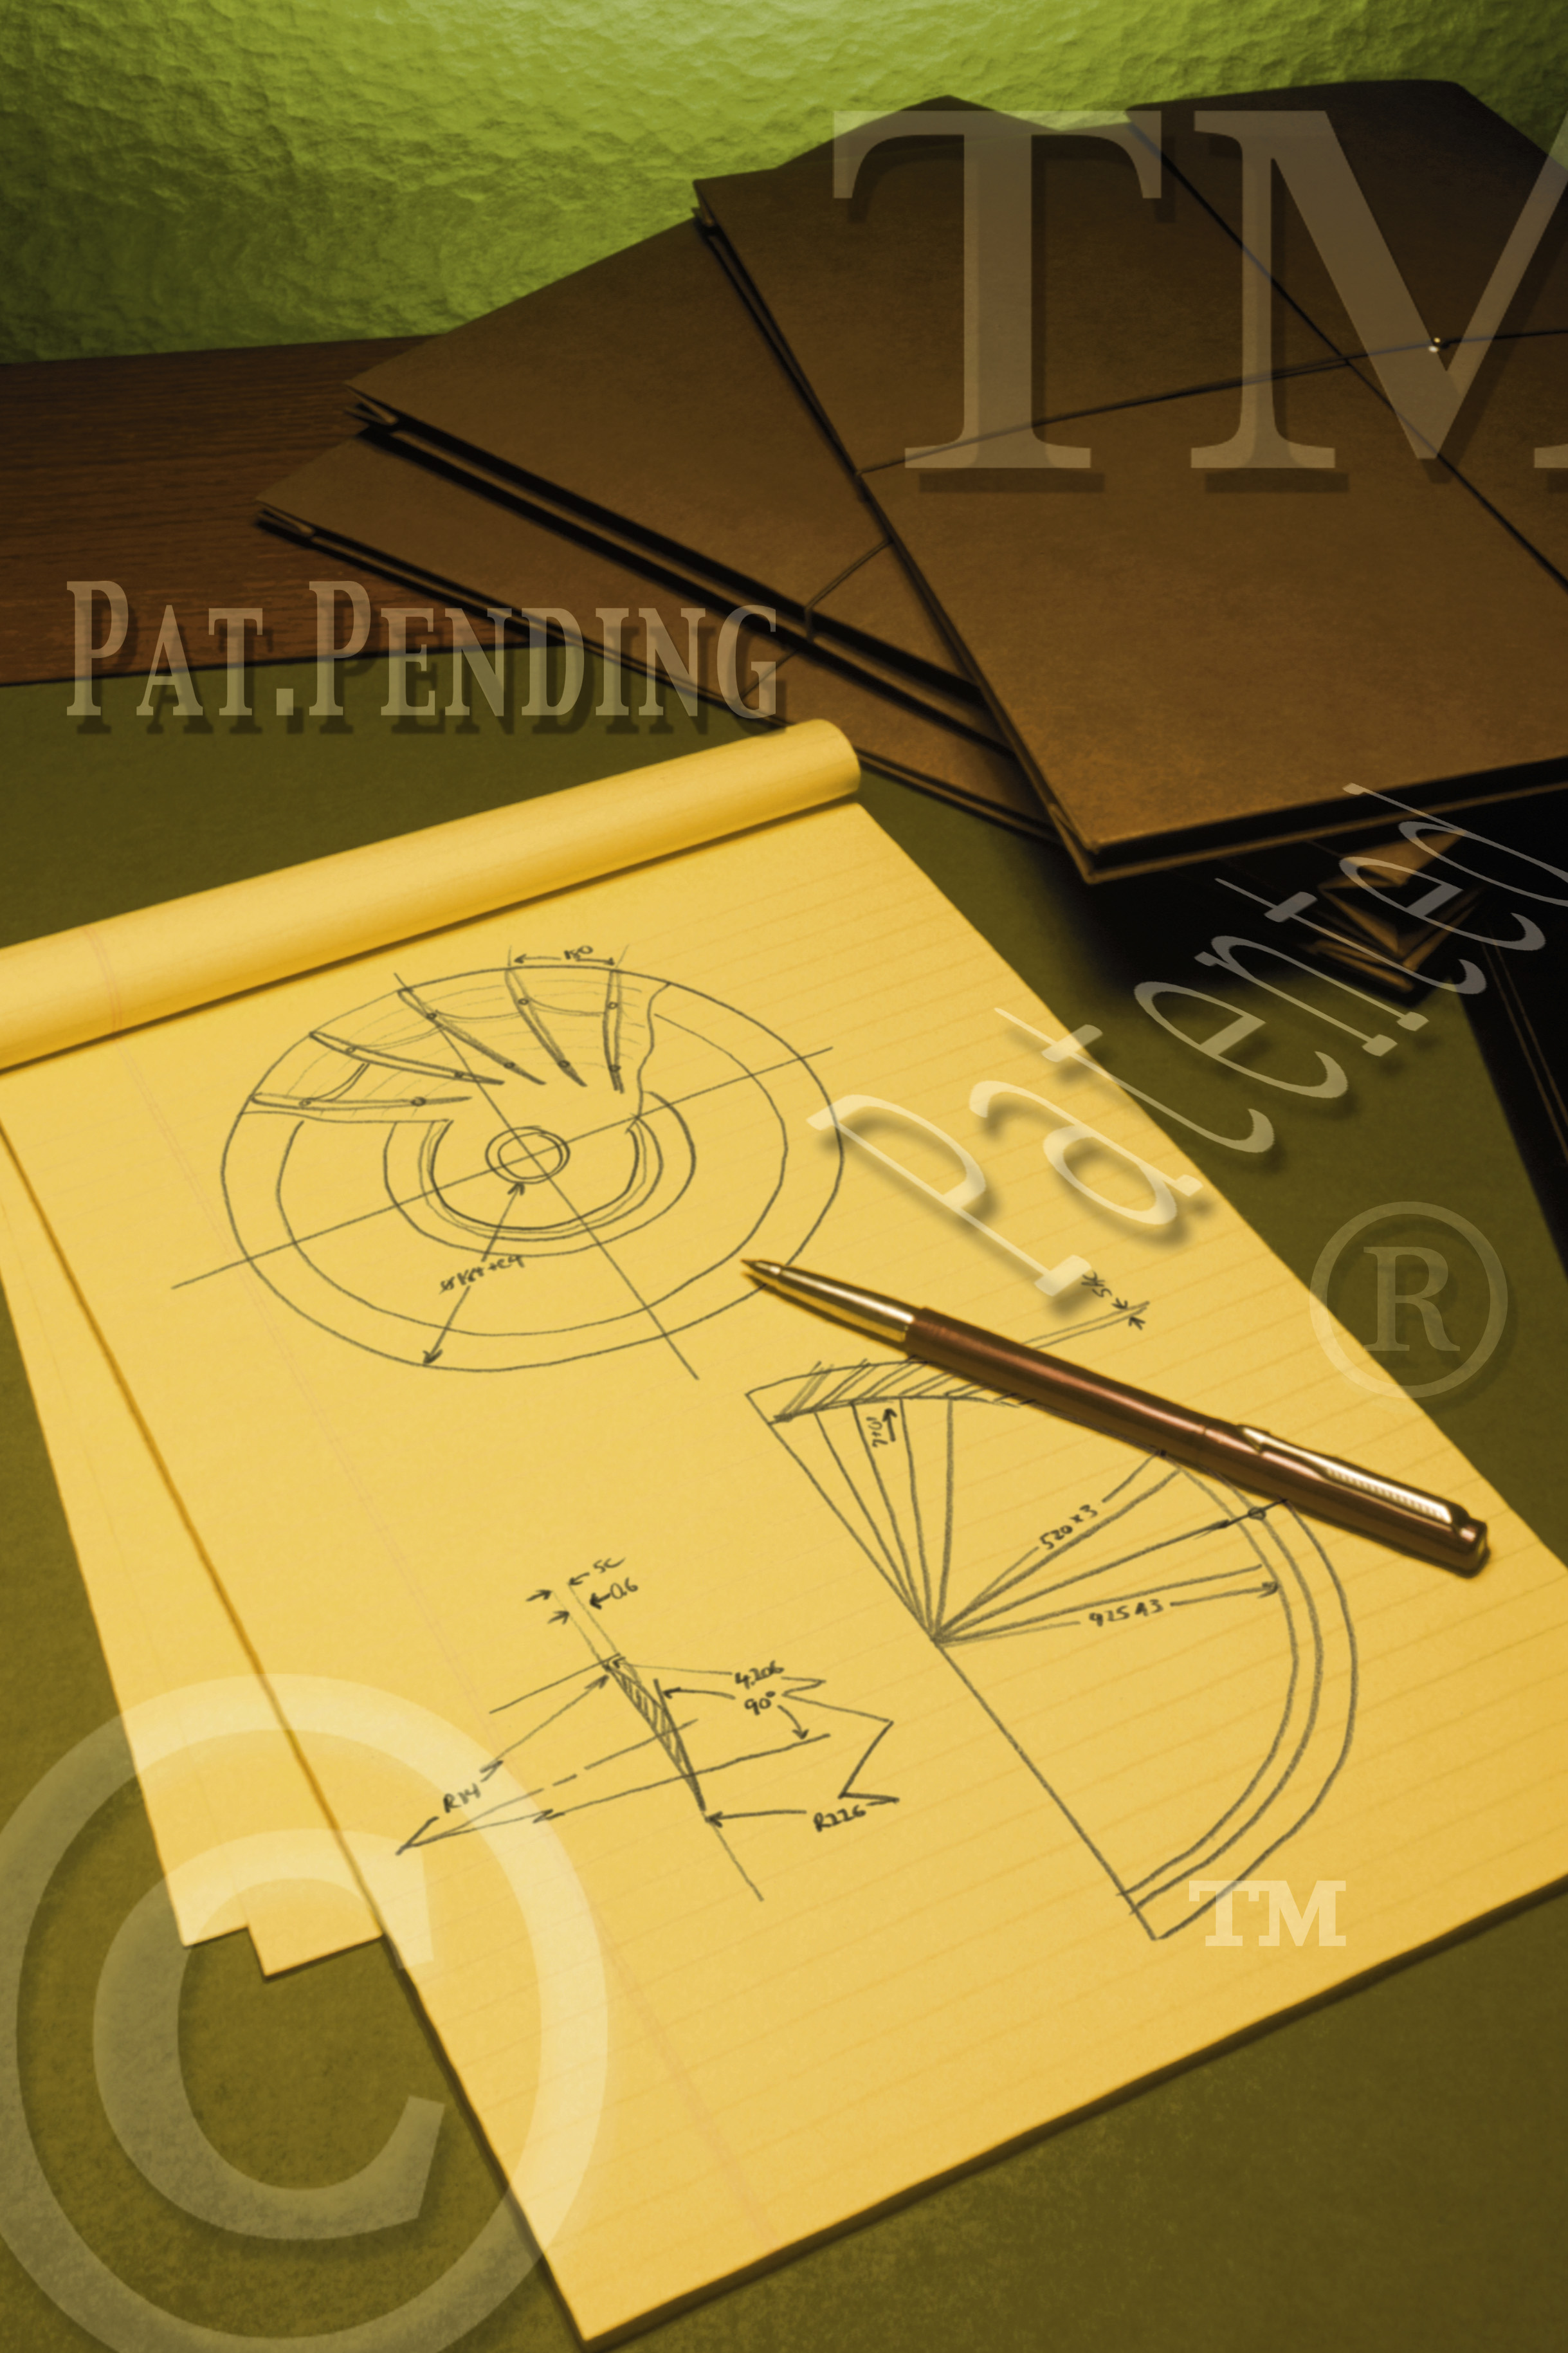 Graphic illustration showing folders,pencil and notepad with drawings and the text pat pending